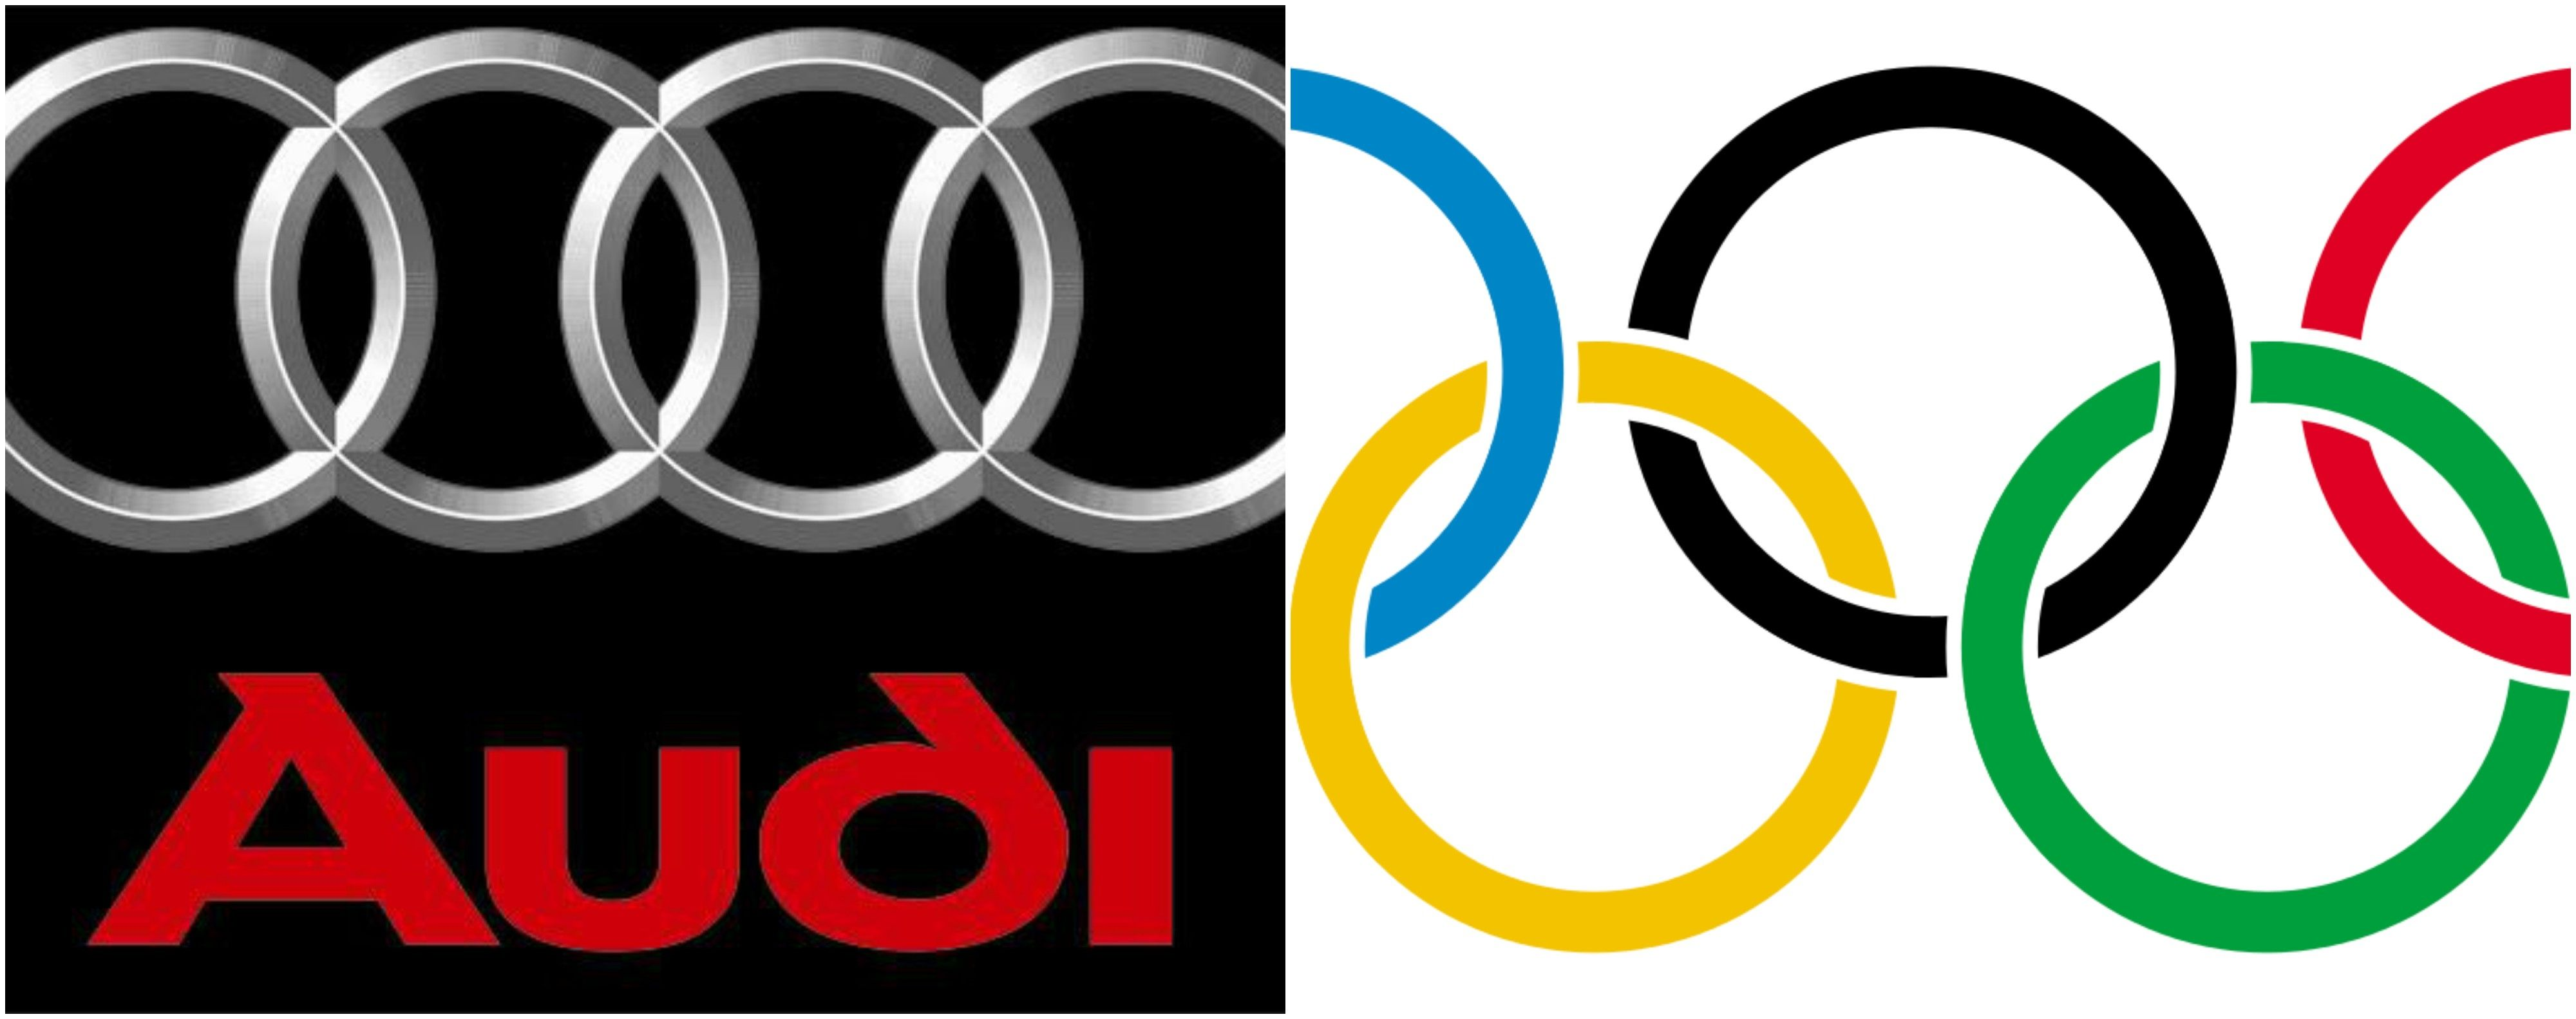 meaning of the rings in the audi logo.